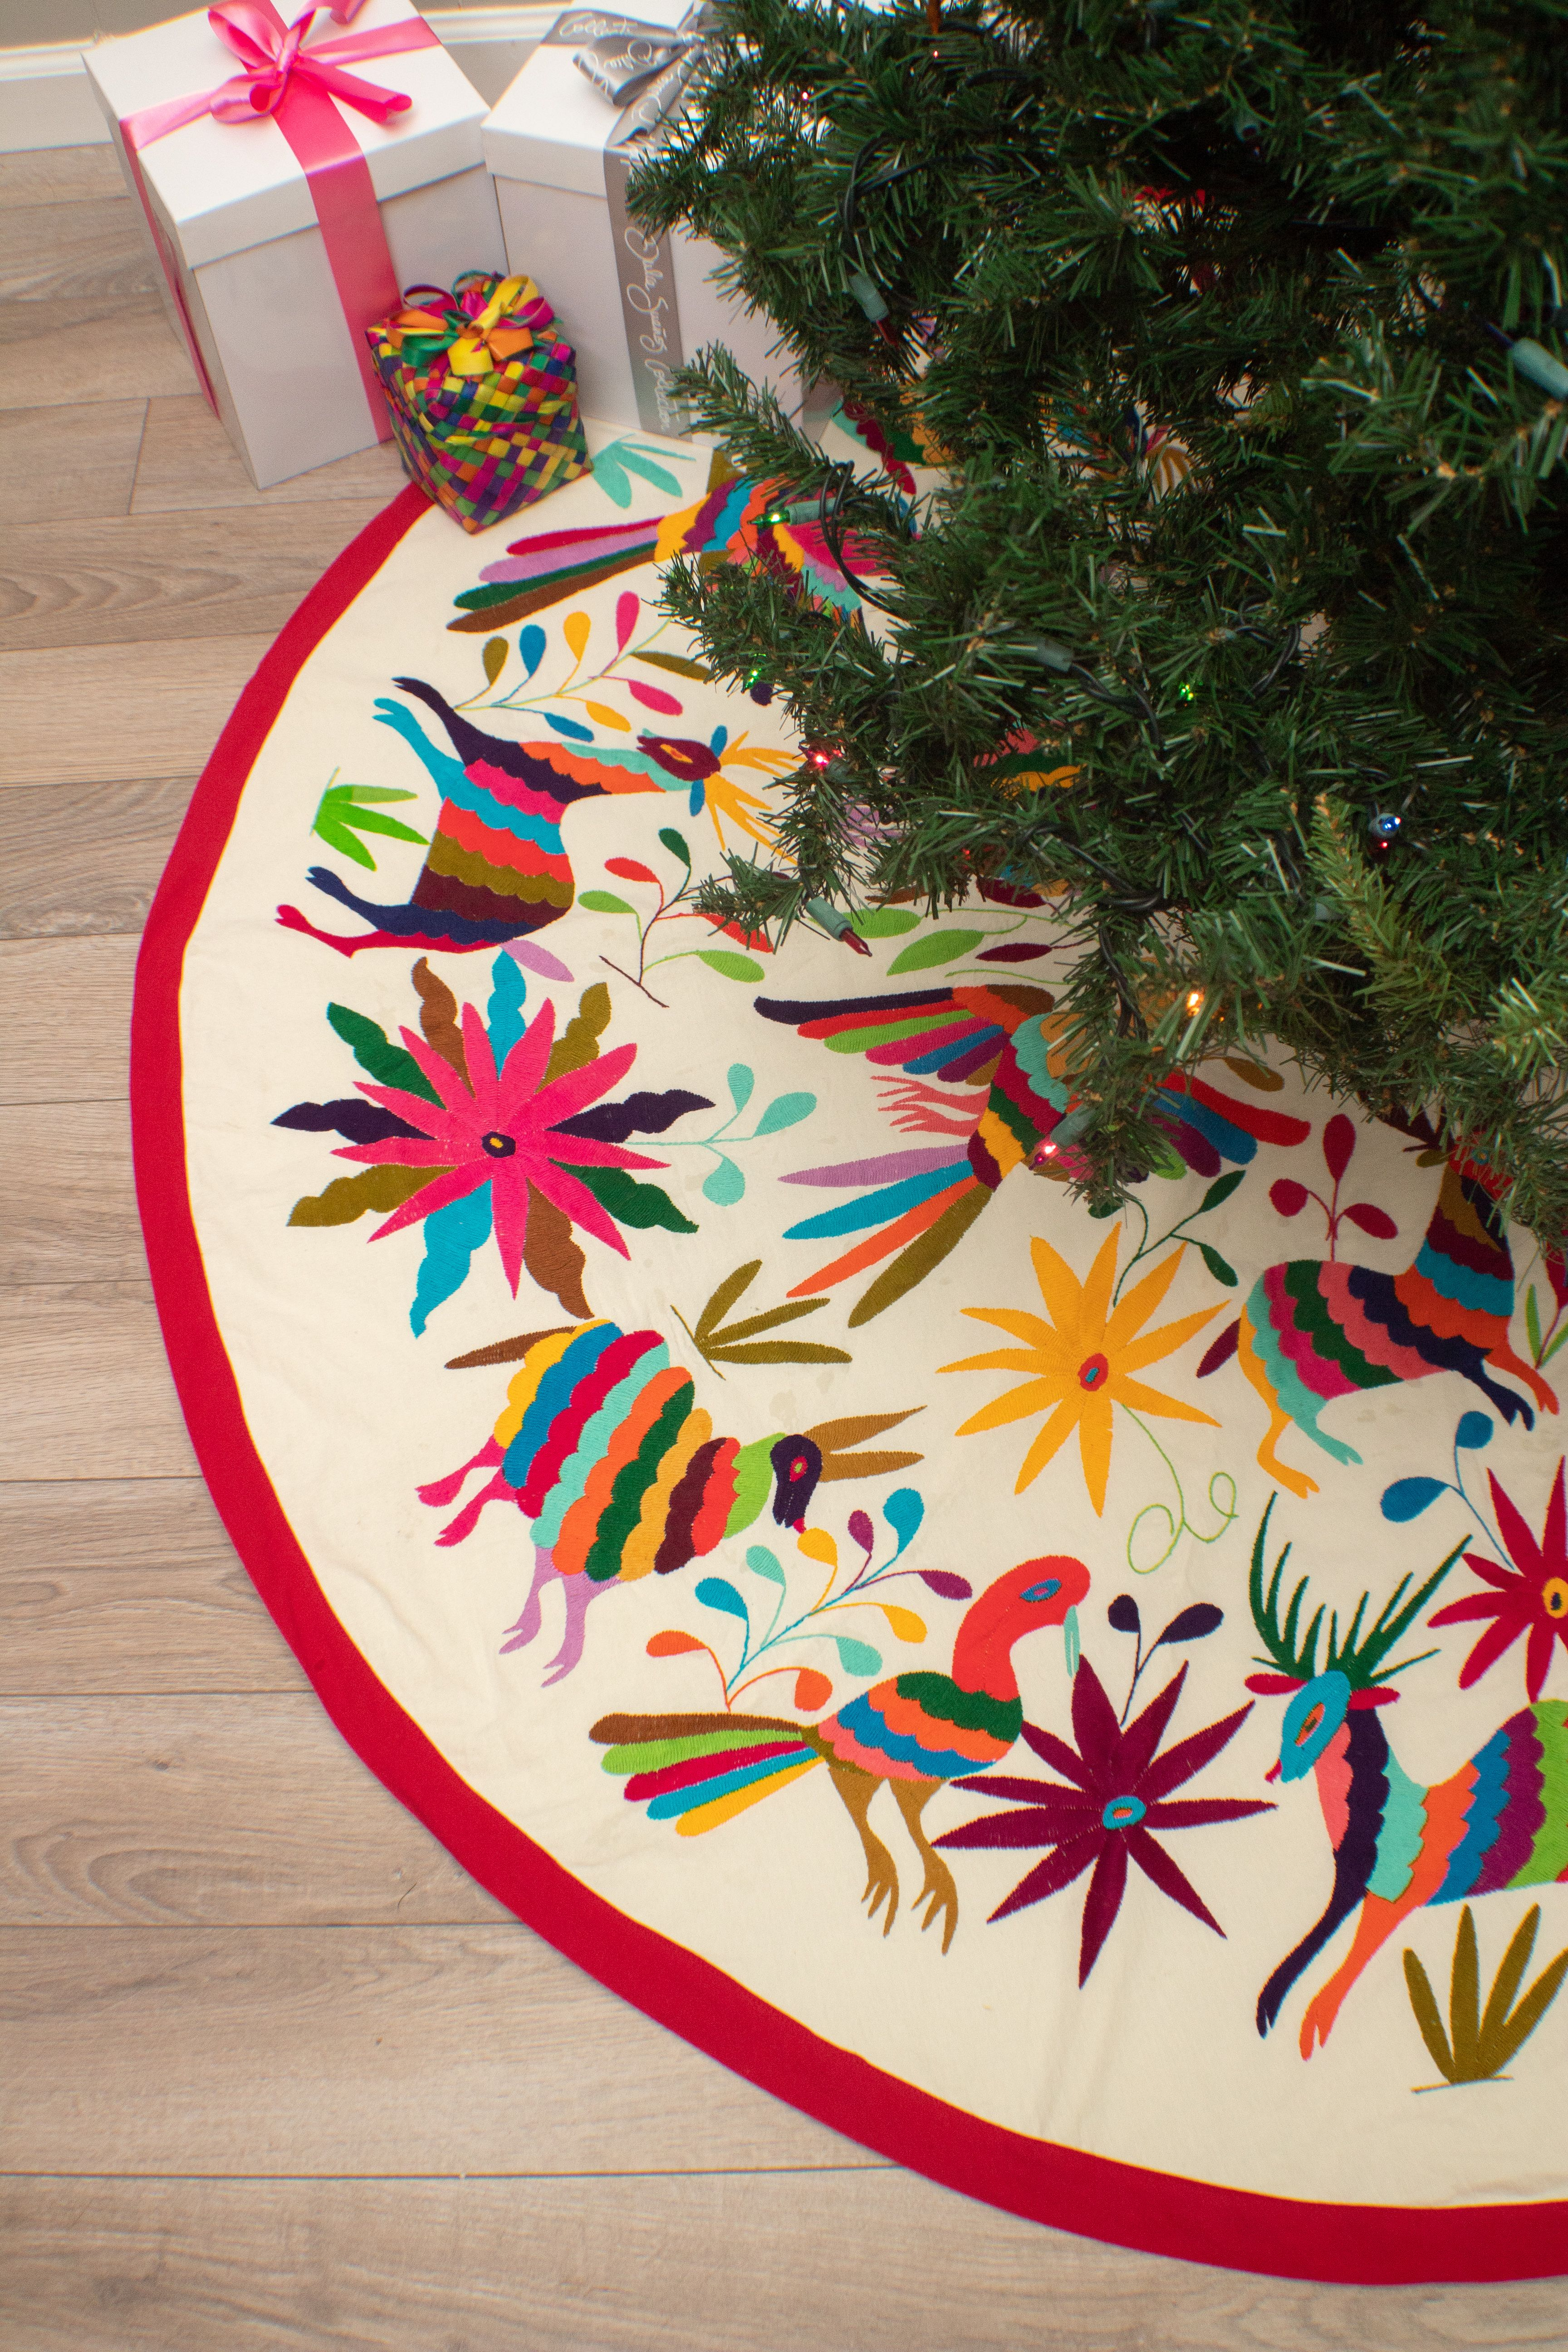 Mexican Otomi Embroidered Tree Skirt In 2020 Christmas Crafts For Gifts Diy Holiday Decor Christmas Crafts